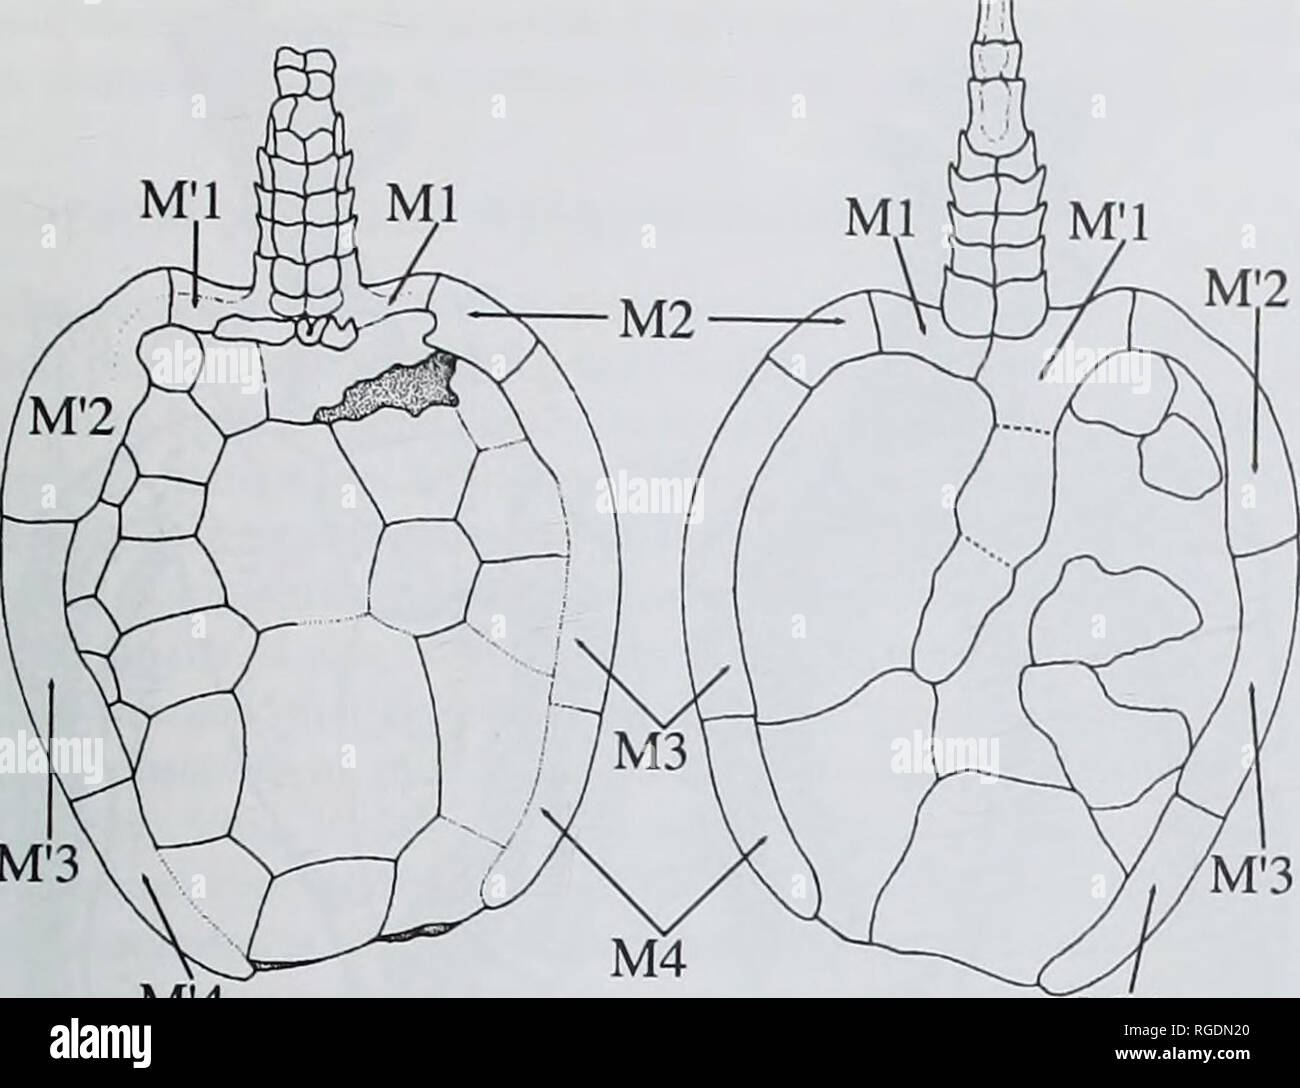 hight resolution of m 3 m 4 m 4 b fig 10 beryllia iniranda cripps amp daley middle ordovician llandeilo pissot formation france schematic reconstruction